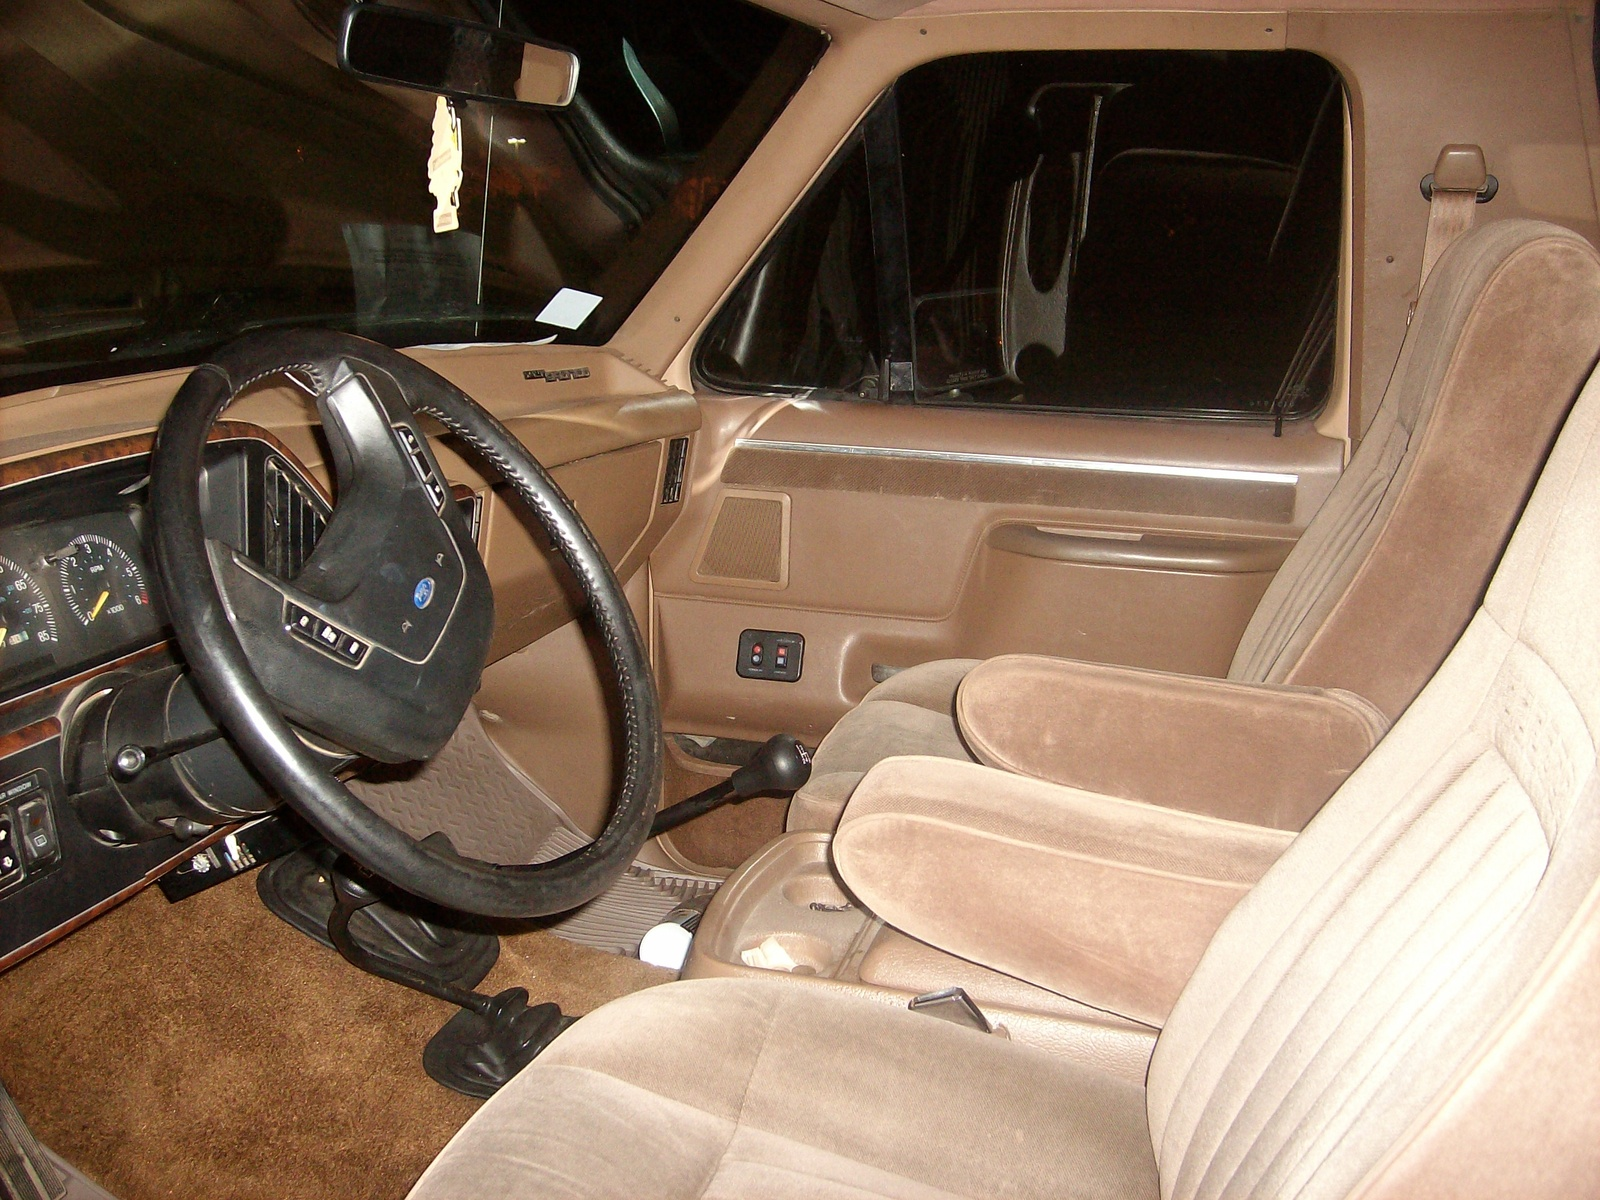 Ford Bronco interior #1